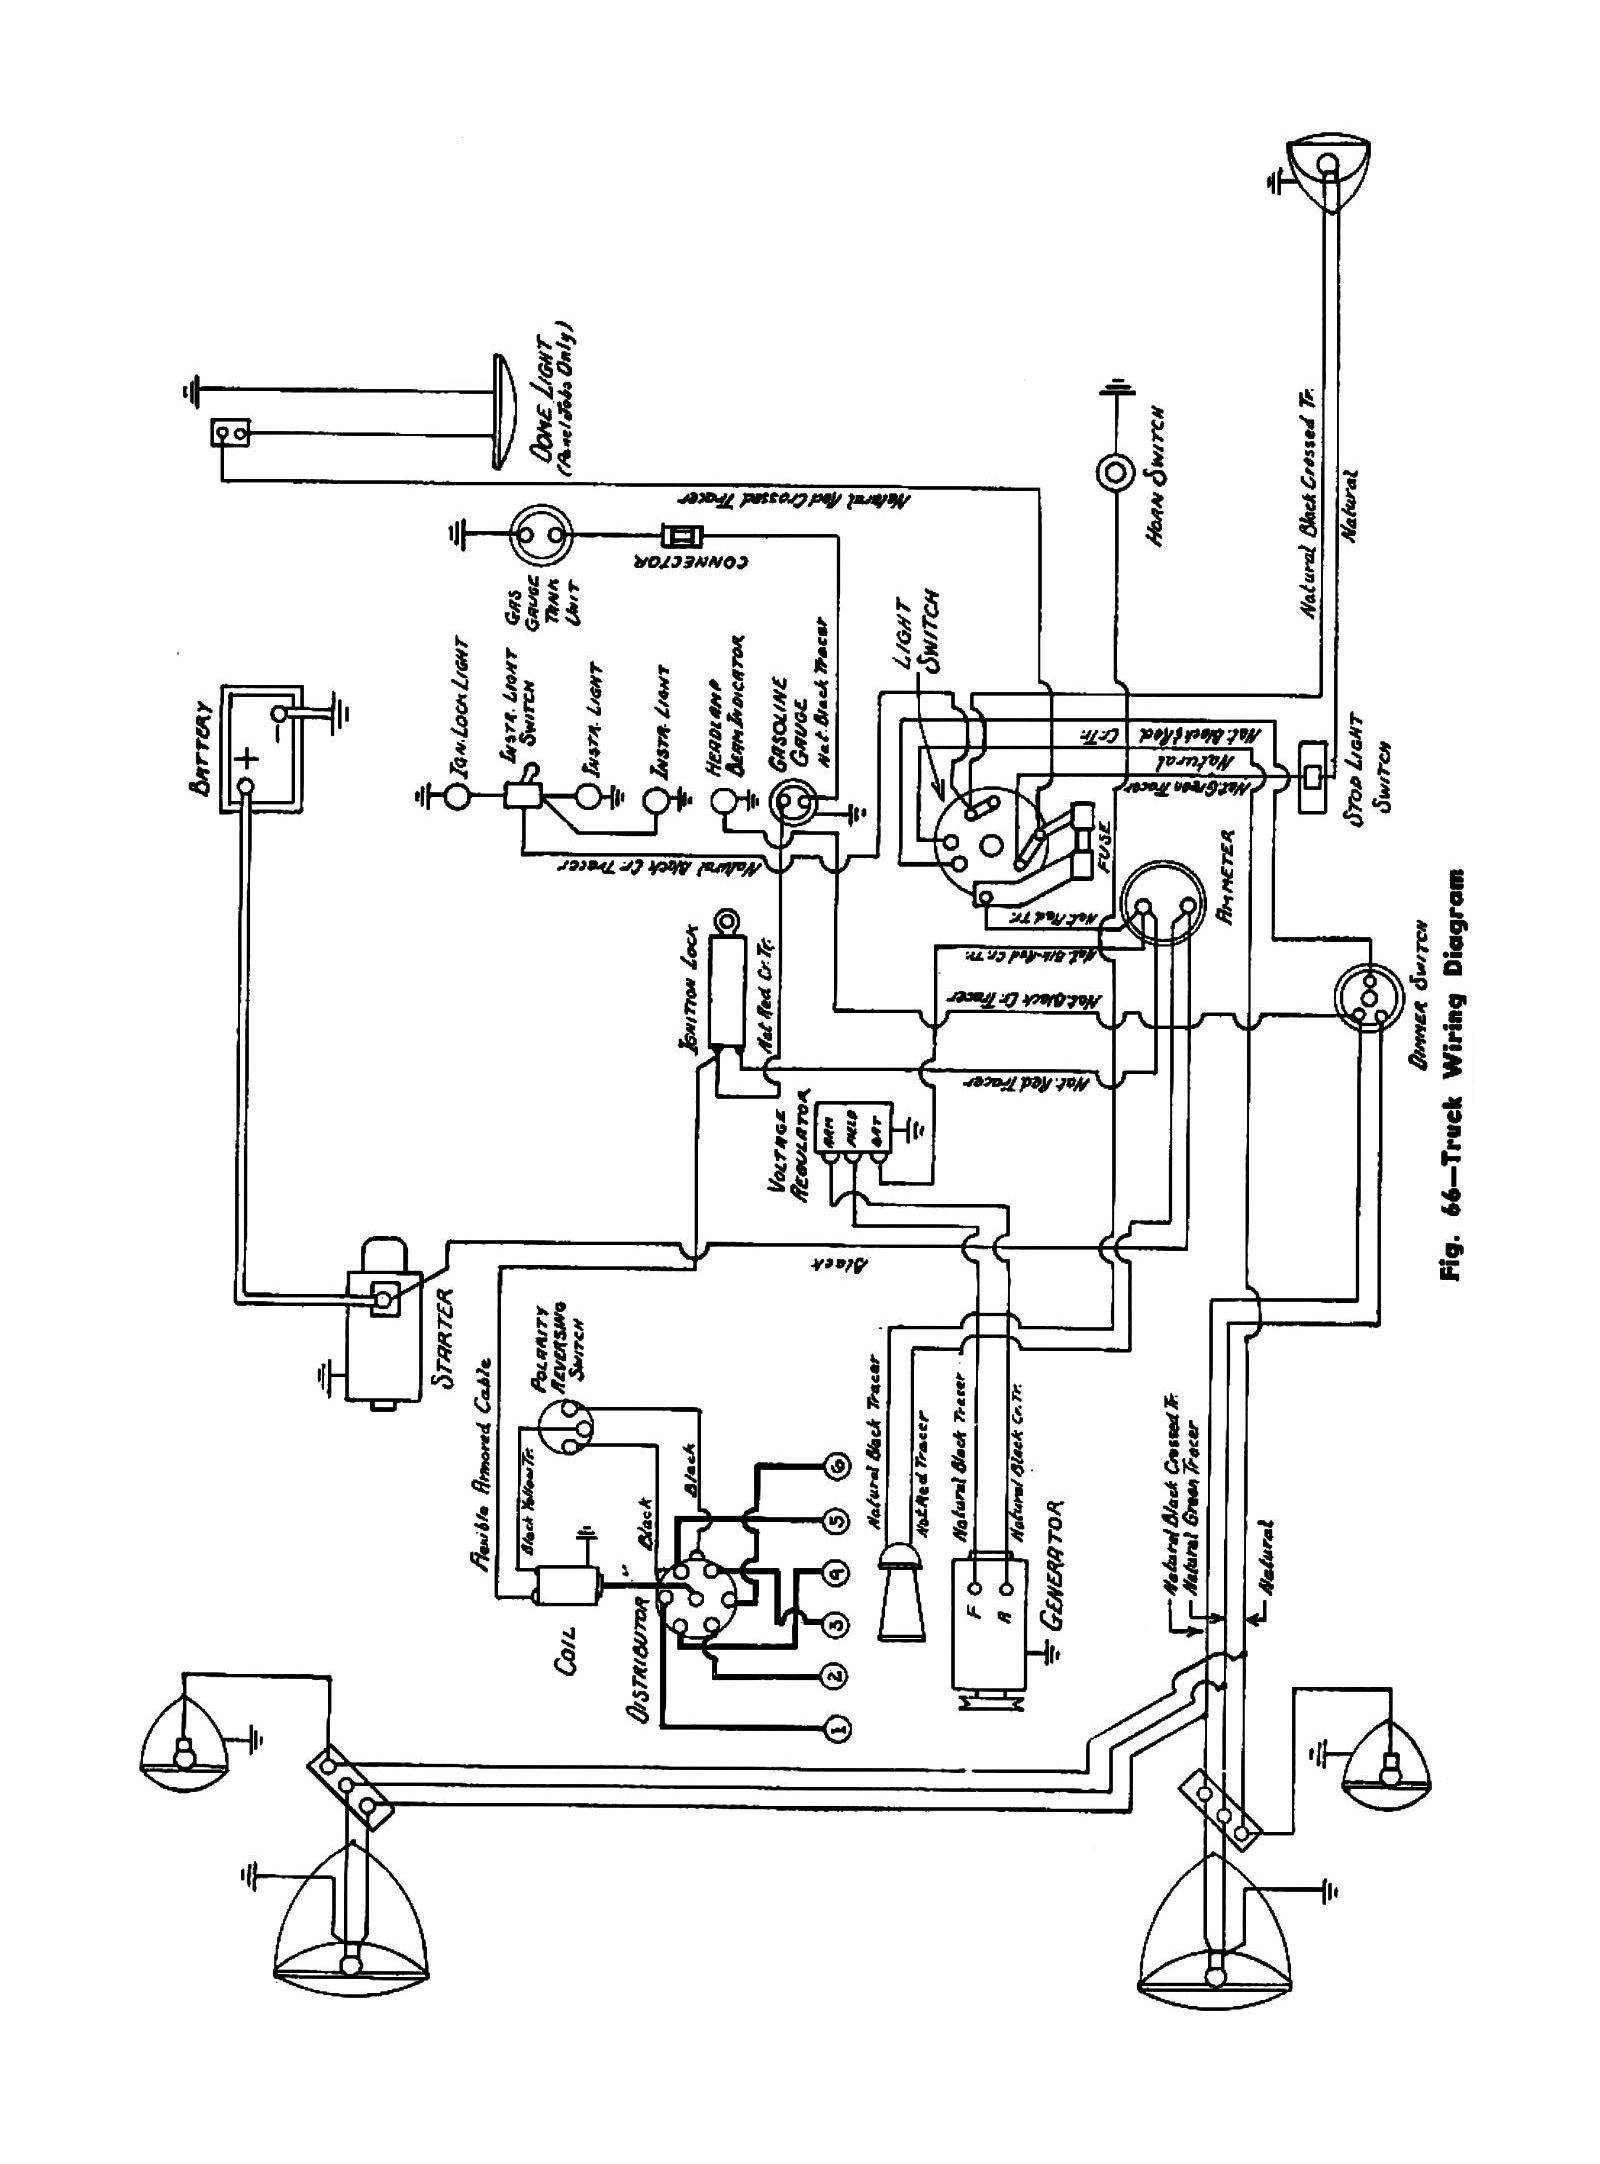 Chevy Wiring Diagrams How To Make Typical Dynamo Electricians Forums 1945 Truck